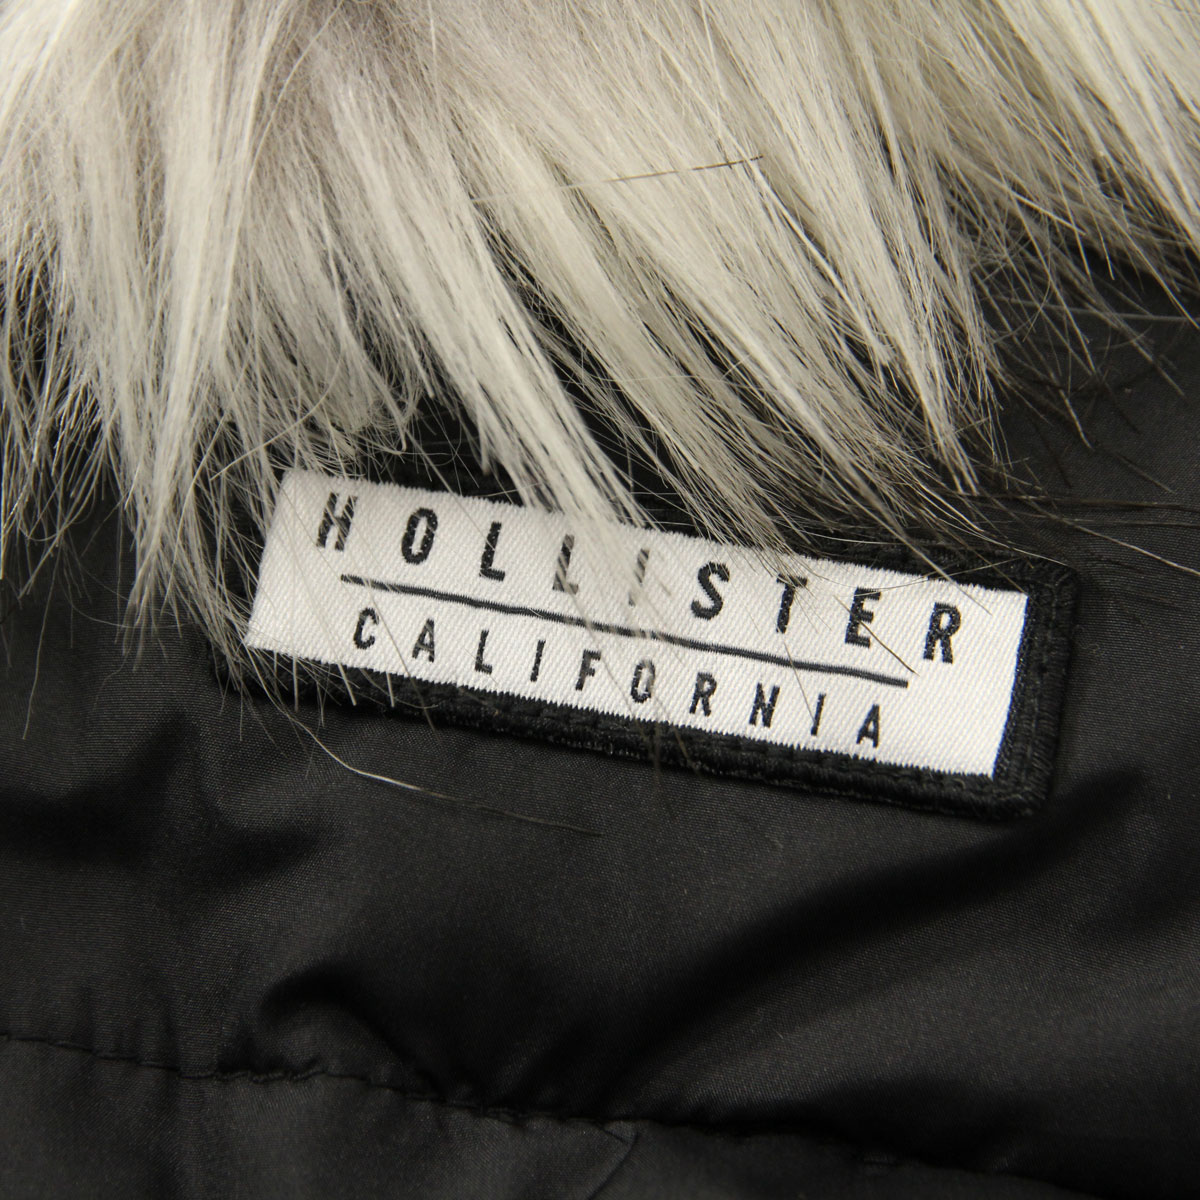 hollister_ladies_2